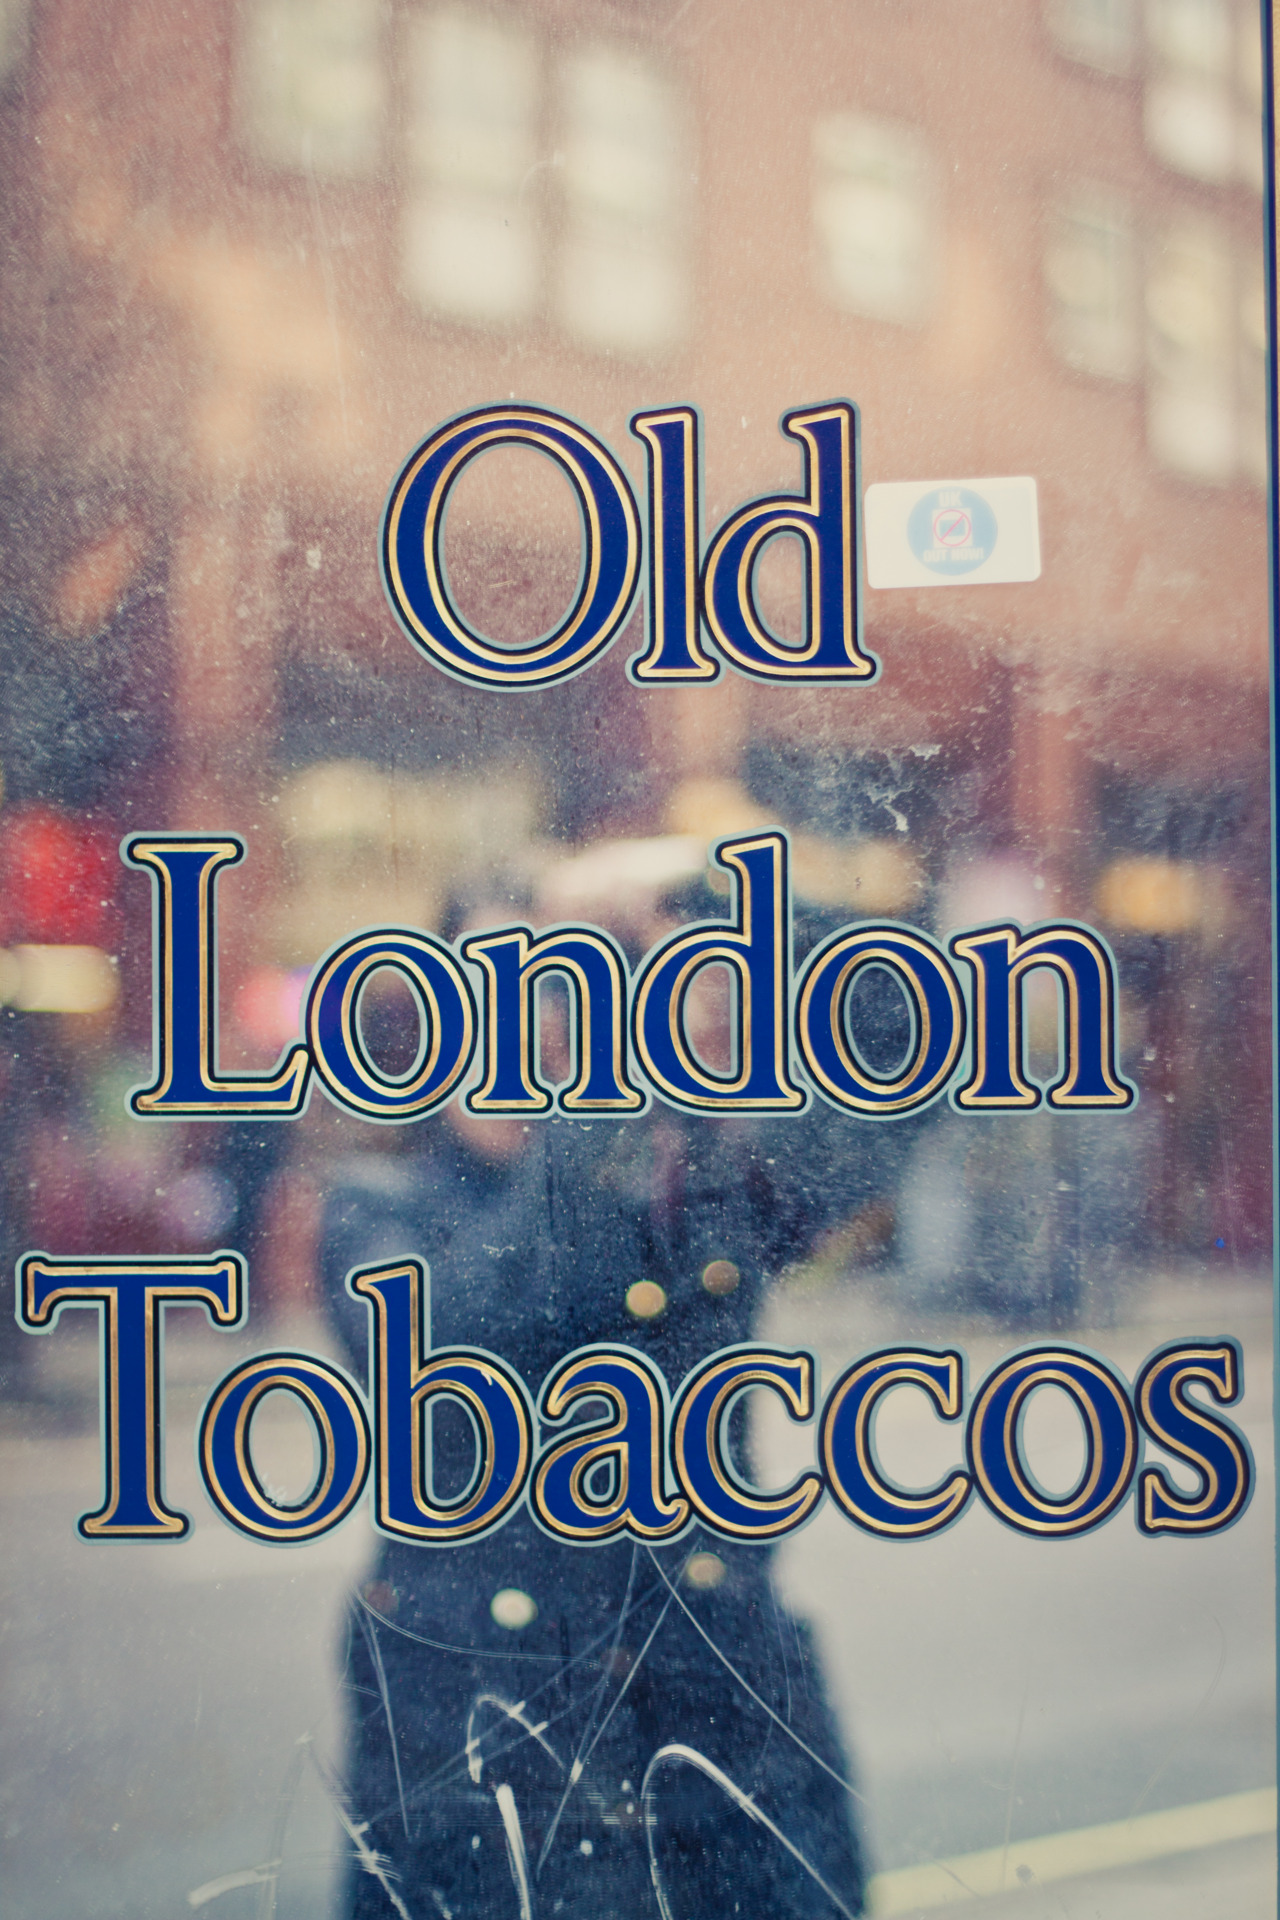 Old London Tobaccos.